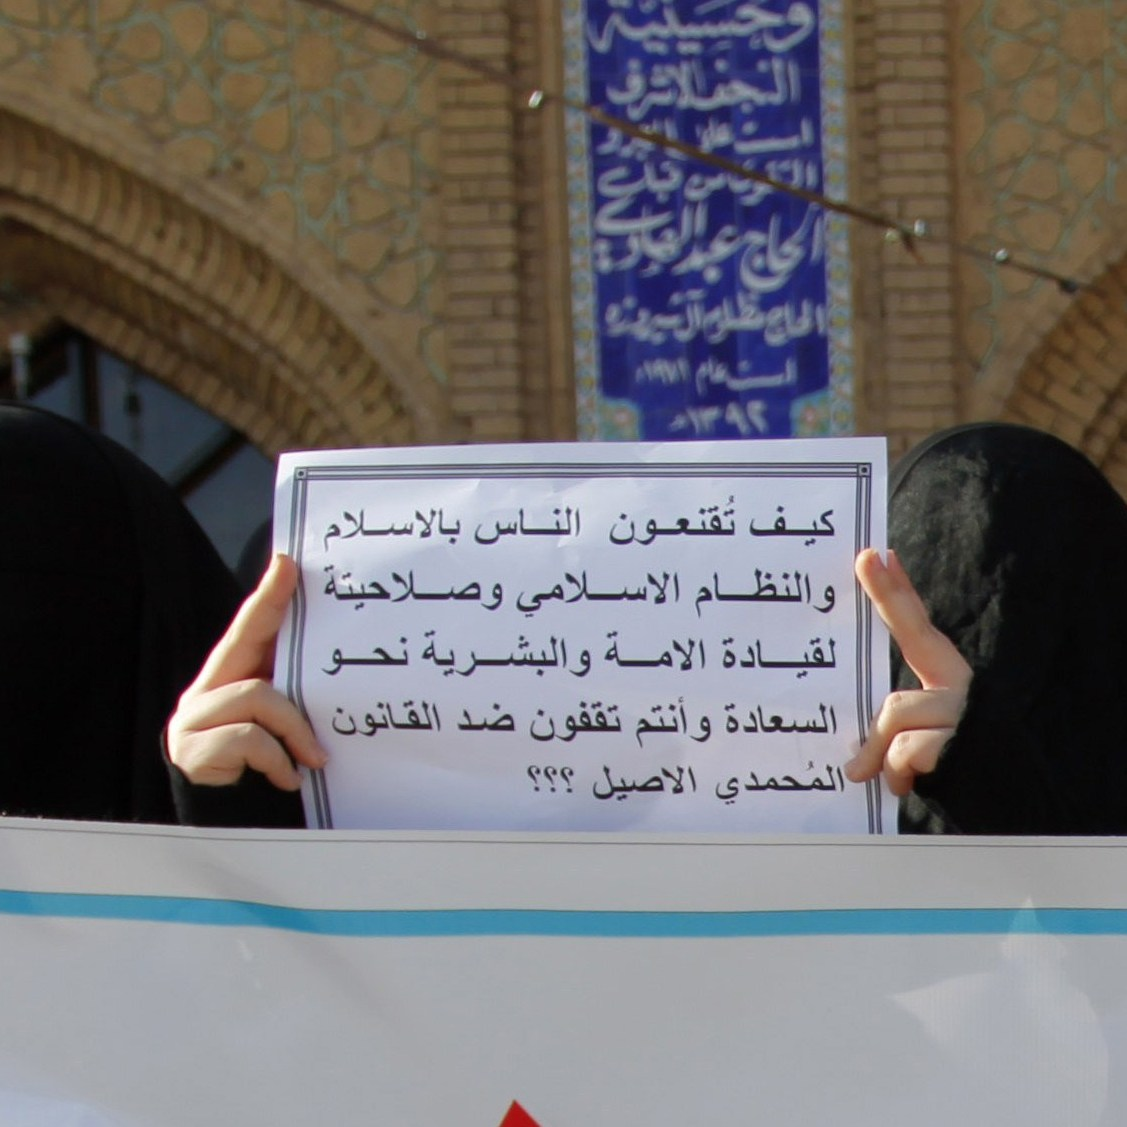 Iraqi women in Najaf hold up a placard in support of the Jaafari law in March. The law is based on the principles of the Jaafari school of Shiite religious jurisprudence. It prohibits Muslim men from marrying non-Muslims and lowers the marriage age to 9 for girls and 15 for boys.